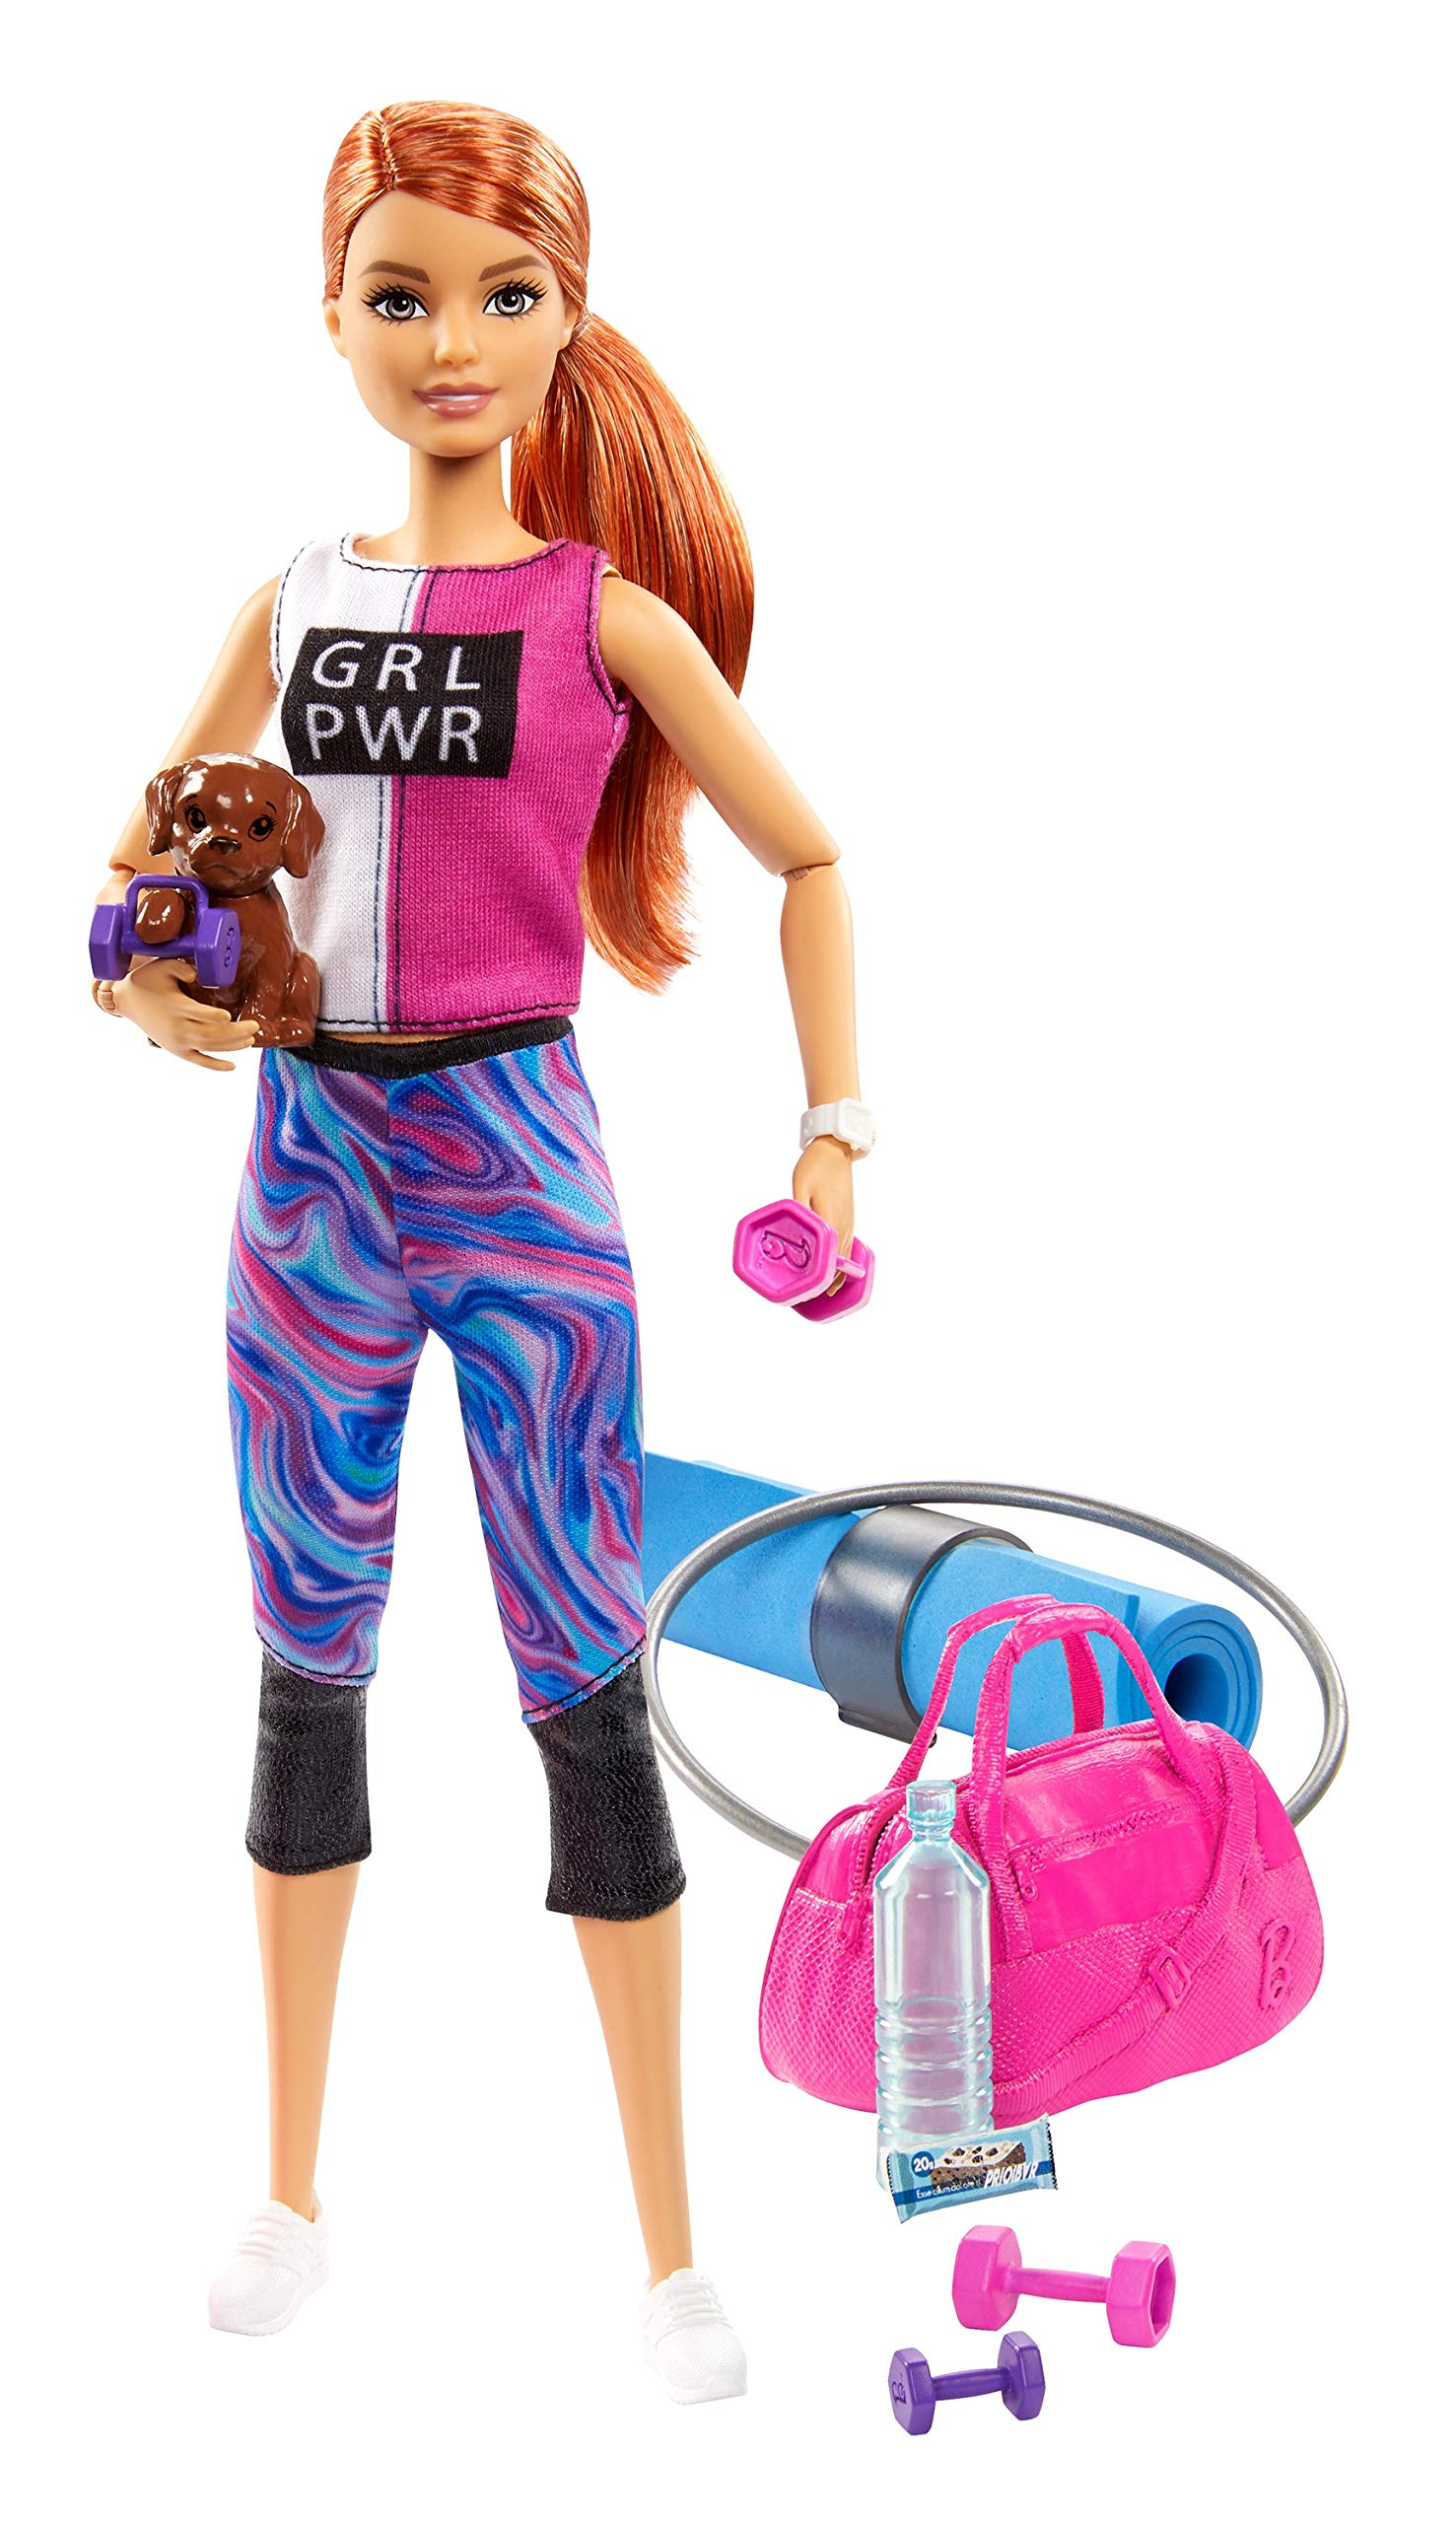 Barbie Fitness Doll, Red-Haired, with Puppy and 9 Accessories, Including Yoga Mat with Strap, Hula Hoop and Weights, Gift for Kids 3 to 7 Years Old